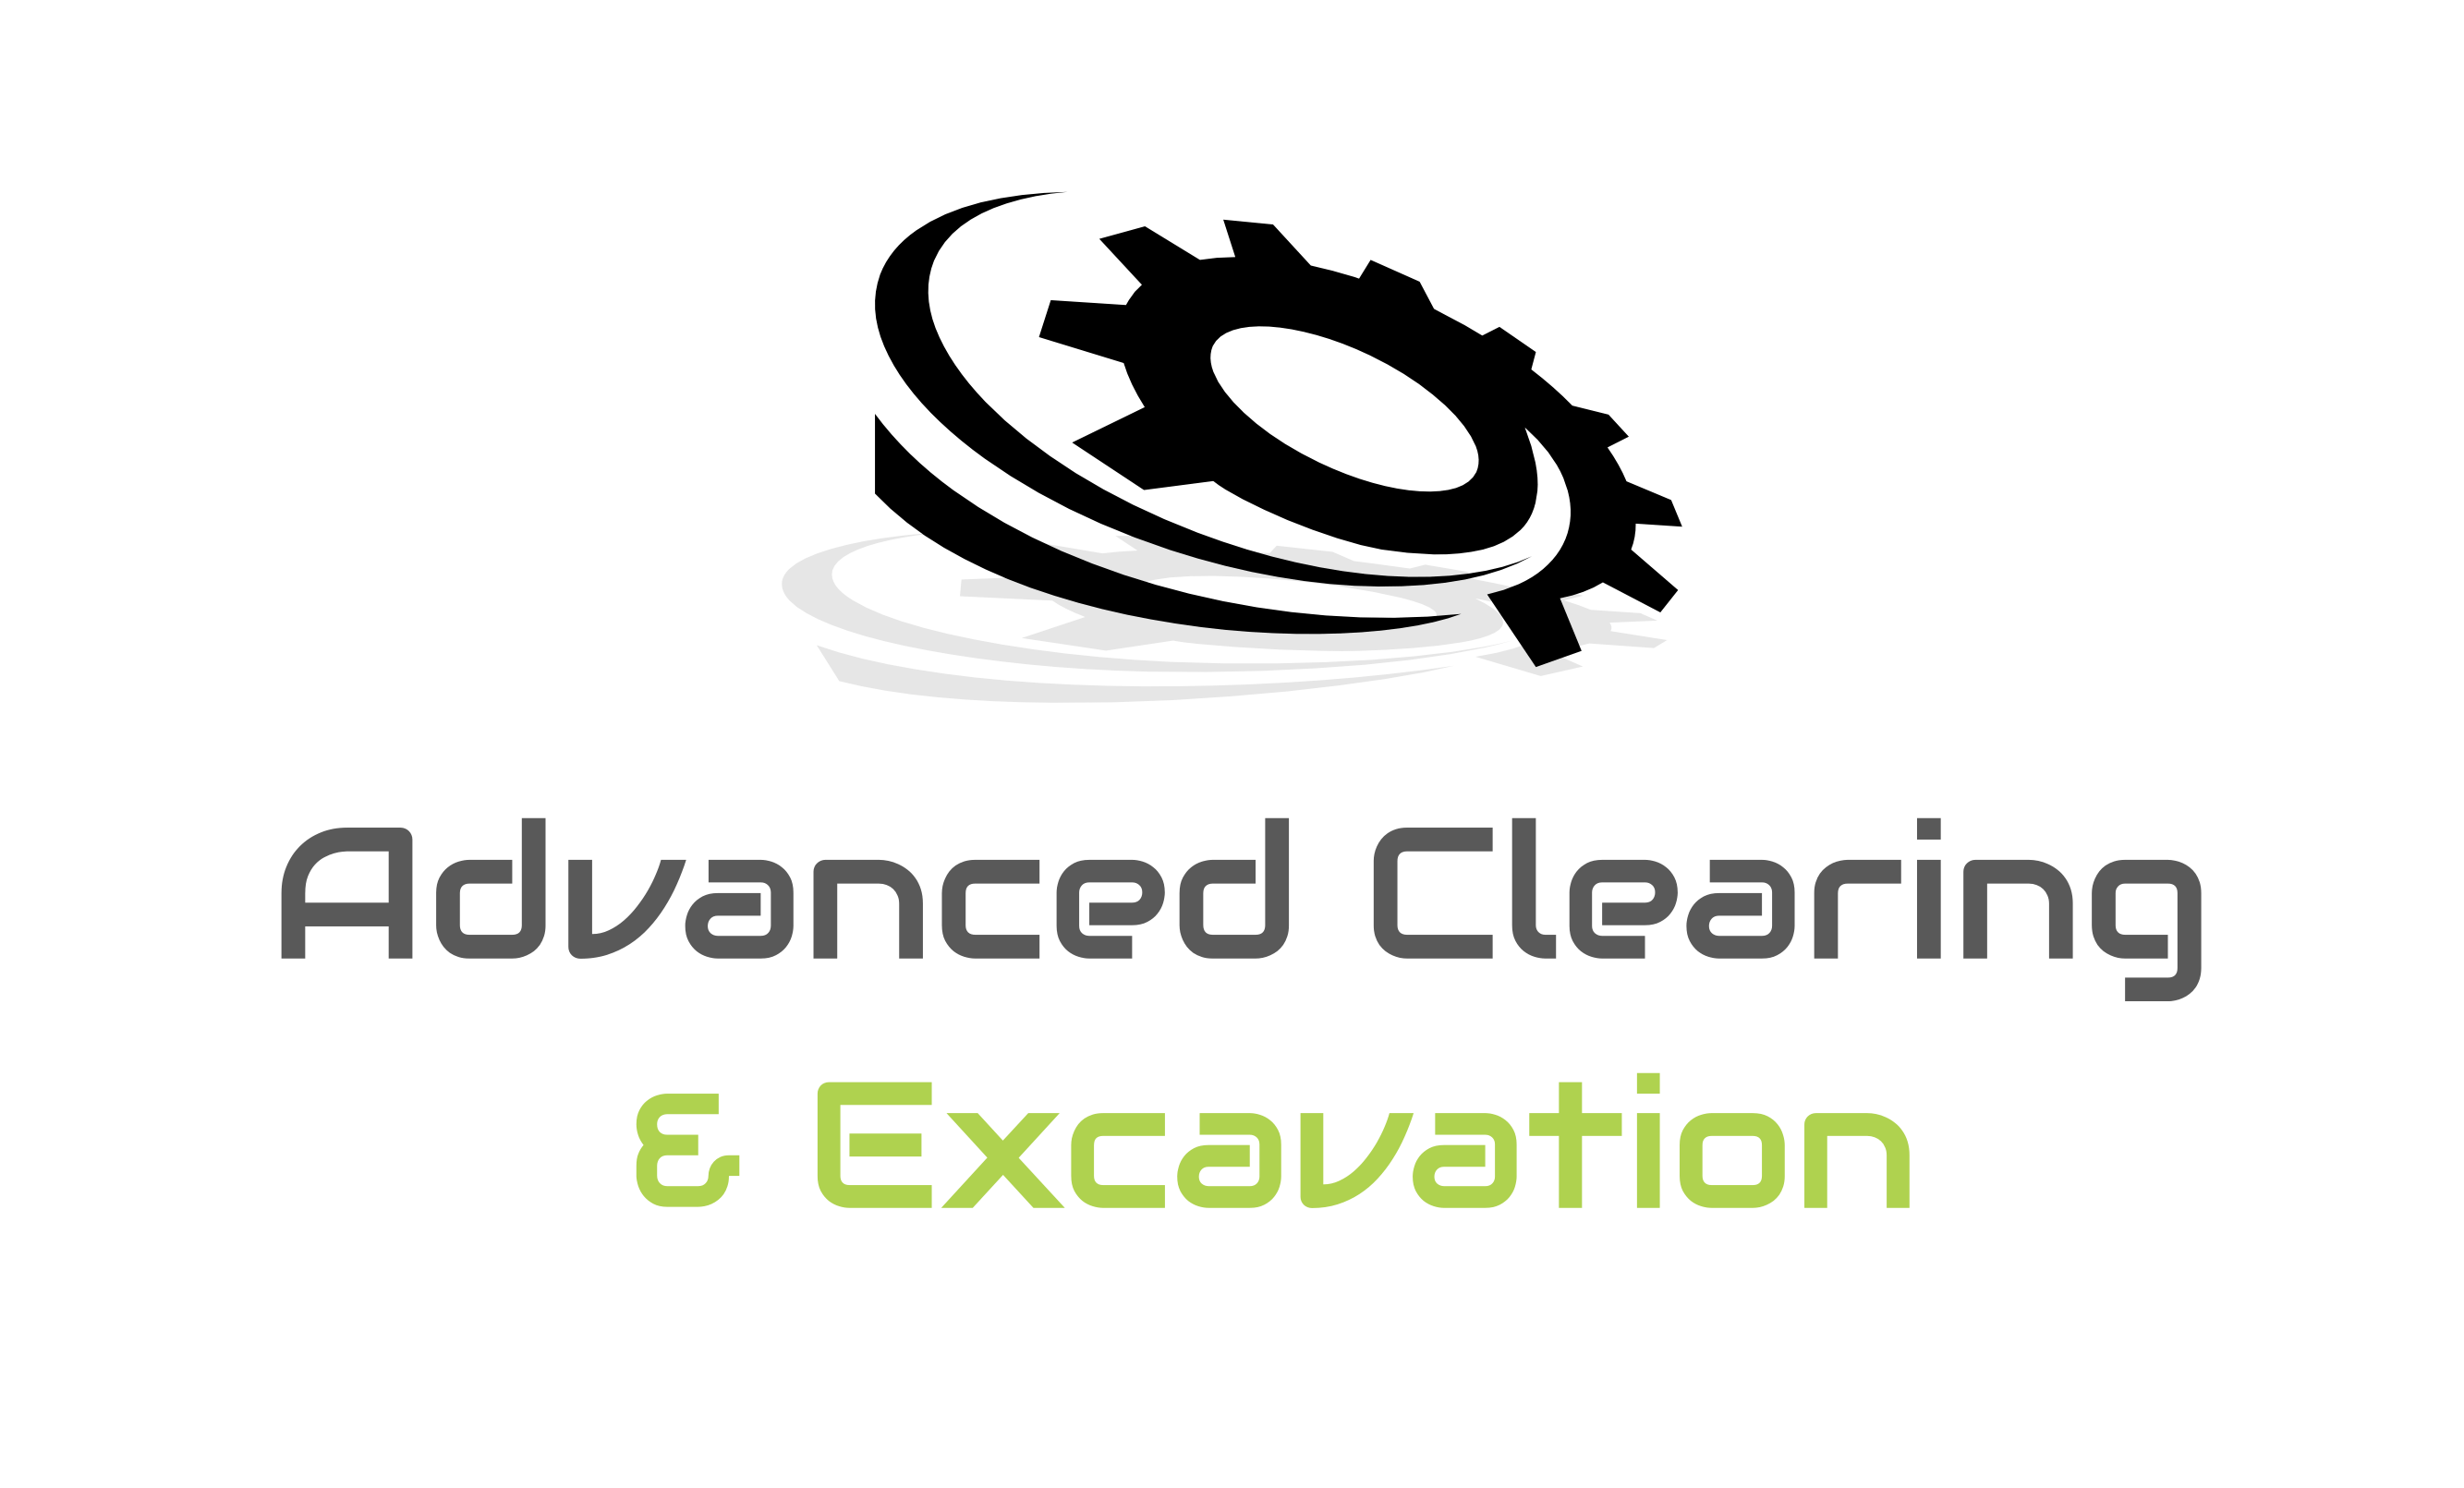 Advanced Clearing & Excavation Pty Ltd